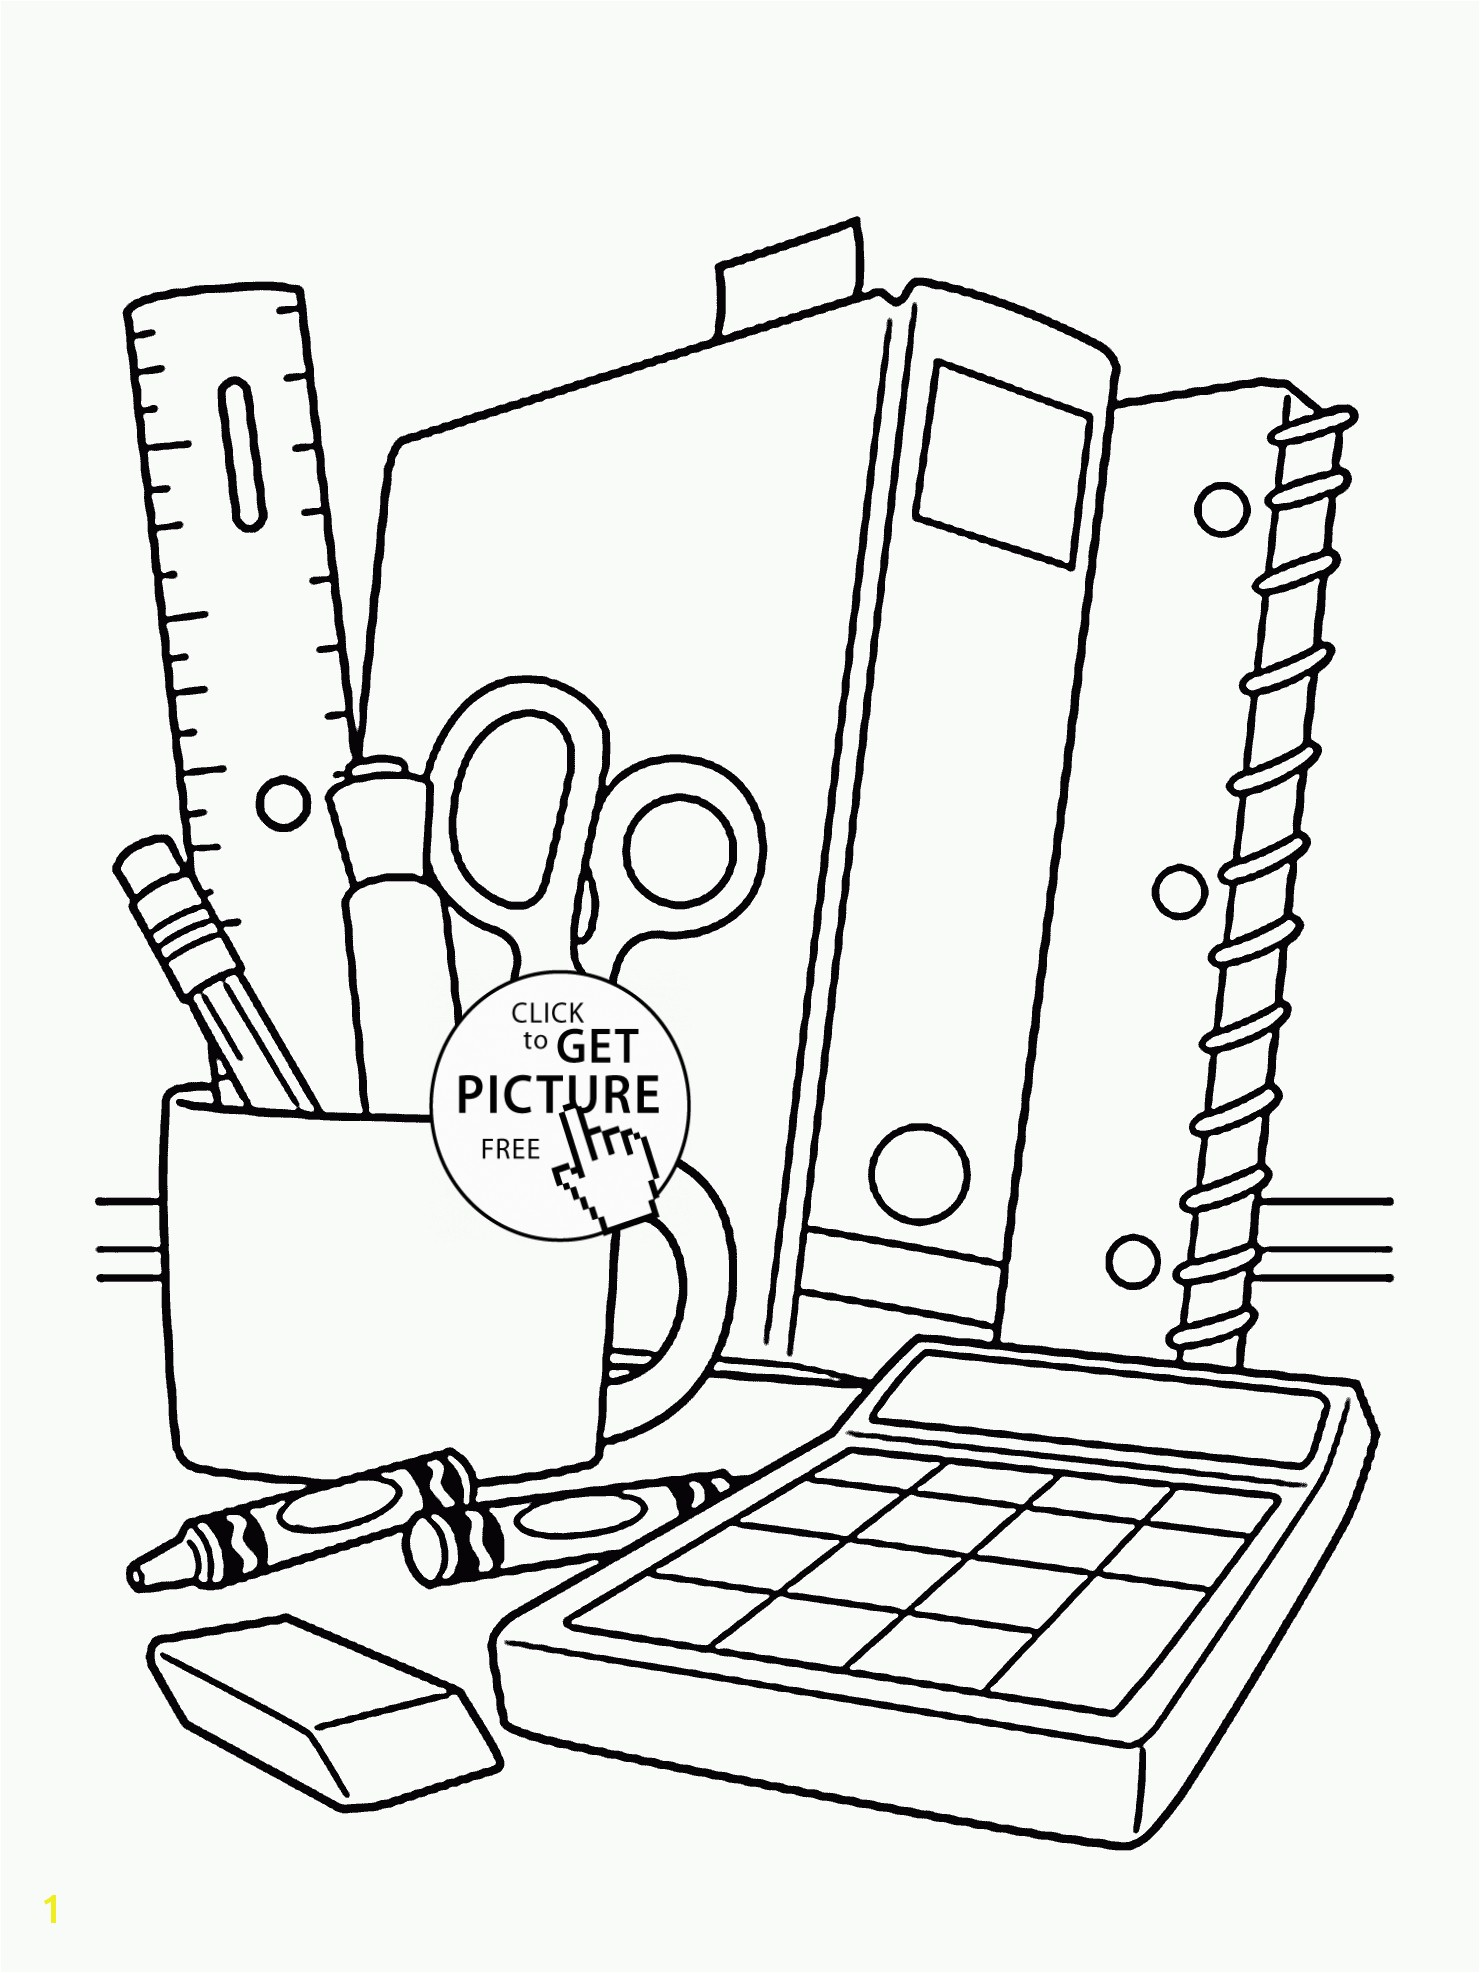 school supplies coloring sheet full size of coloring book and pages school coloring pages supplies page for children back